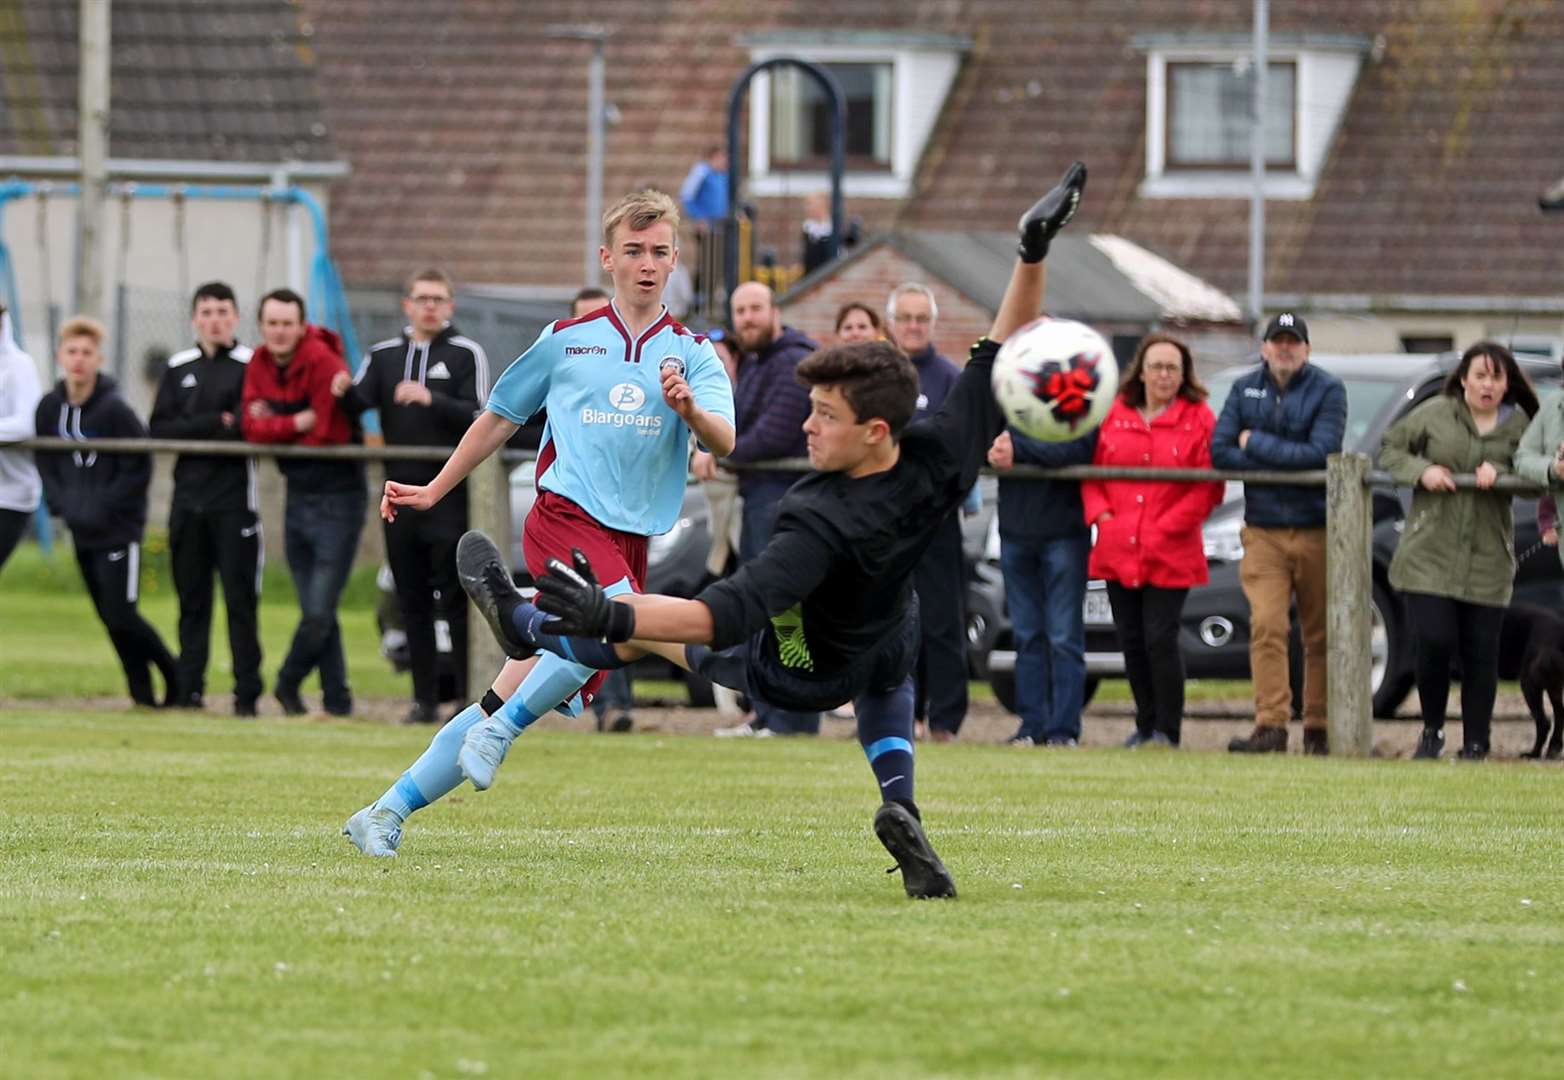 Pentland United's Cameron Montgomery beats High Ormlie Hotspur keeper Lewis Gallagher to score their second equaliser. Pentland United won 3-2. Picture: James Gunn